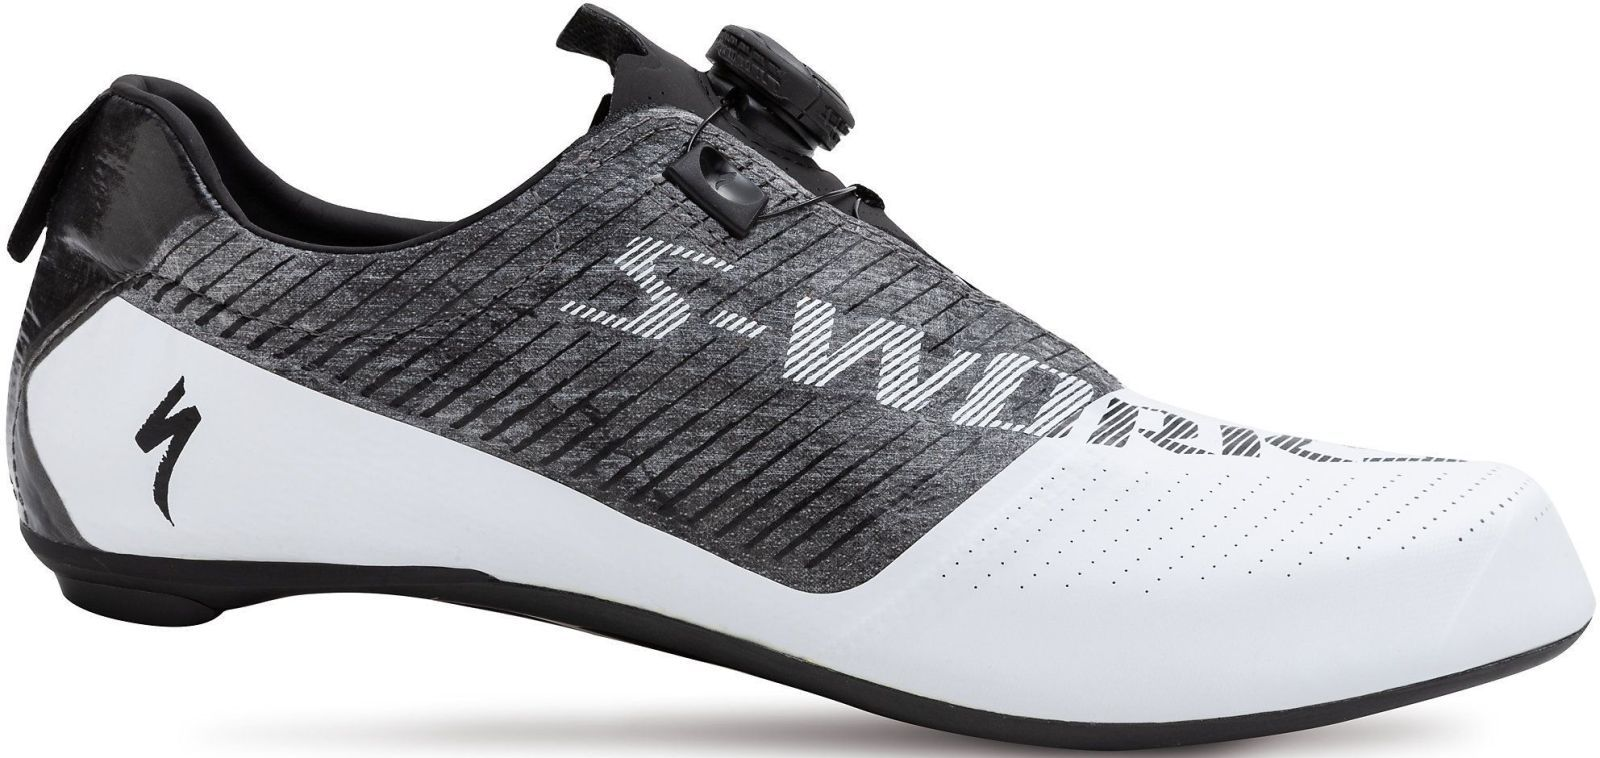 Specialized S-Works Exos RD Shoe - white 40